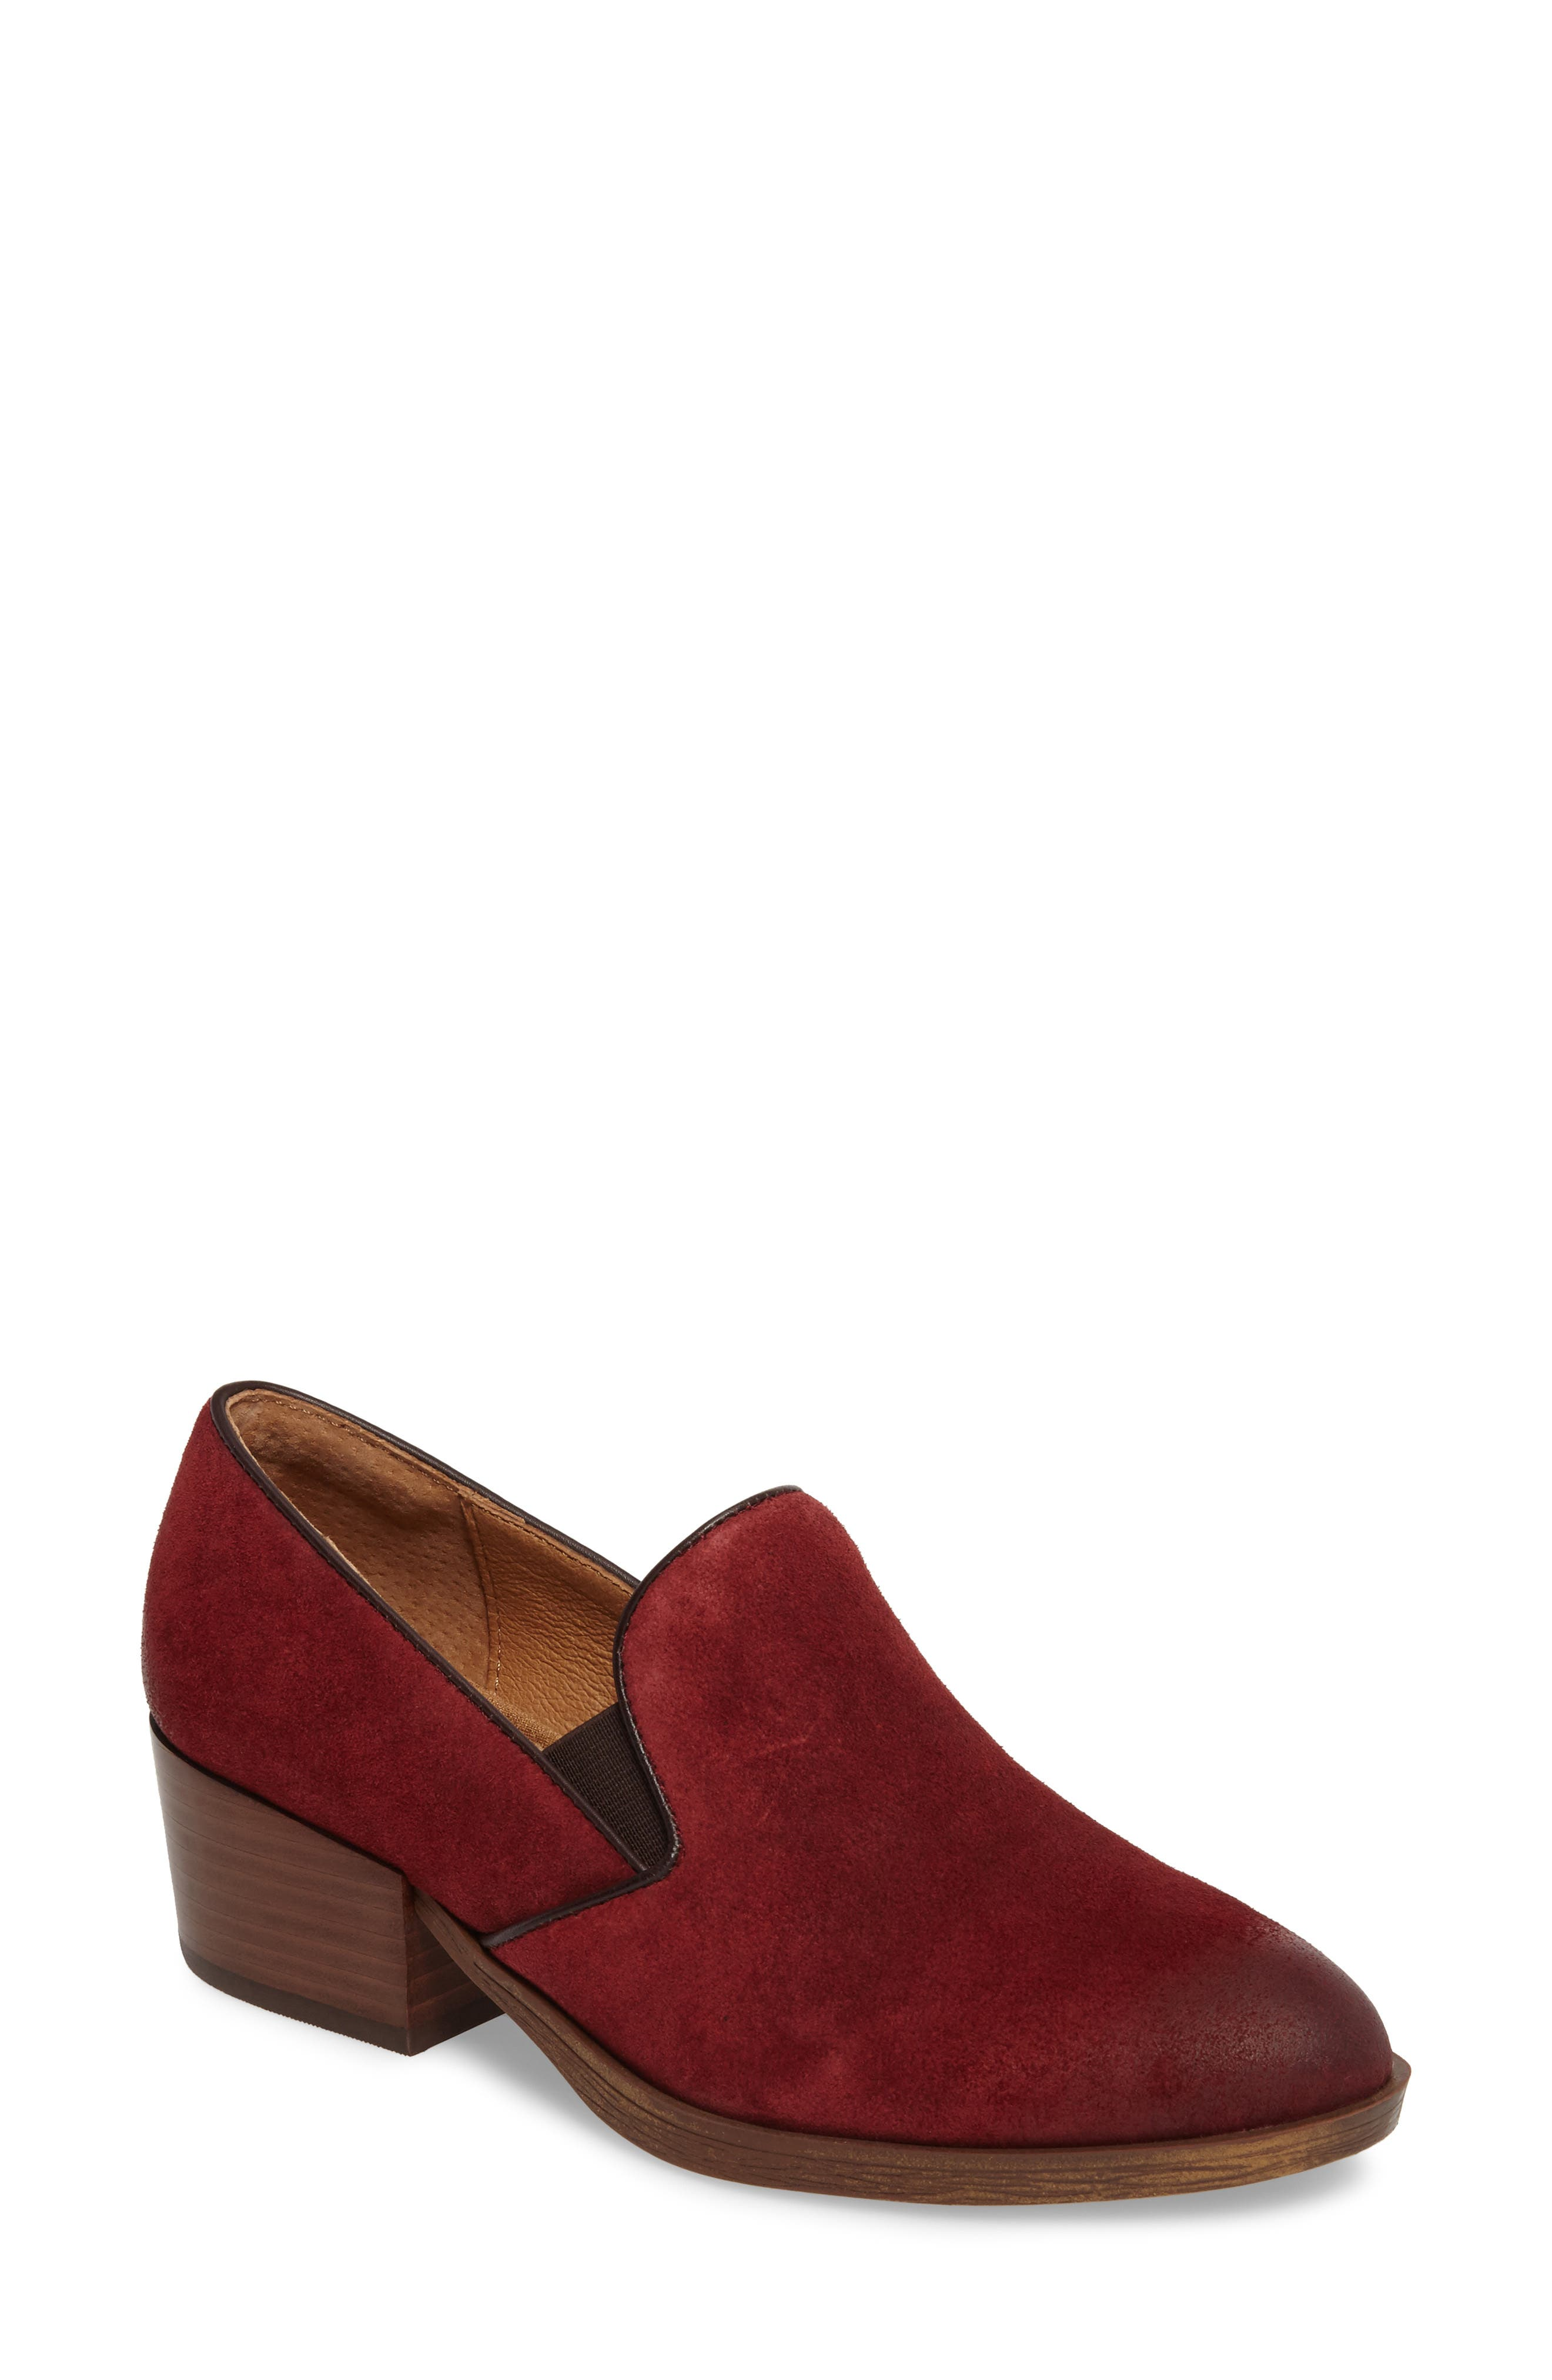 Velina Pump,                             Main thumbnail 1, color,                             Bordo Suede